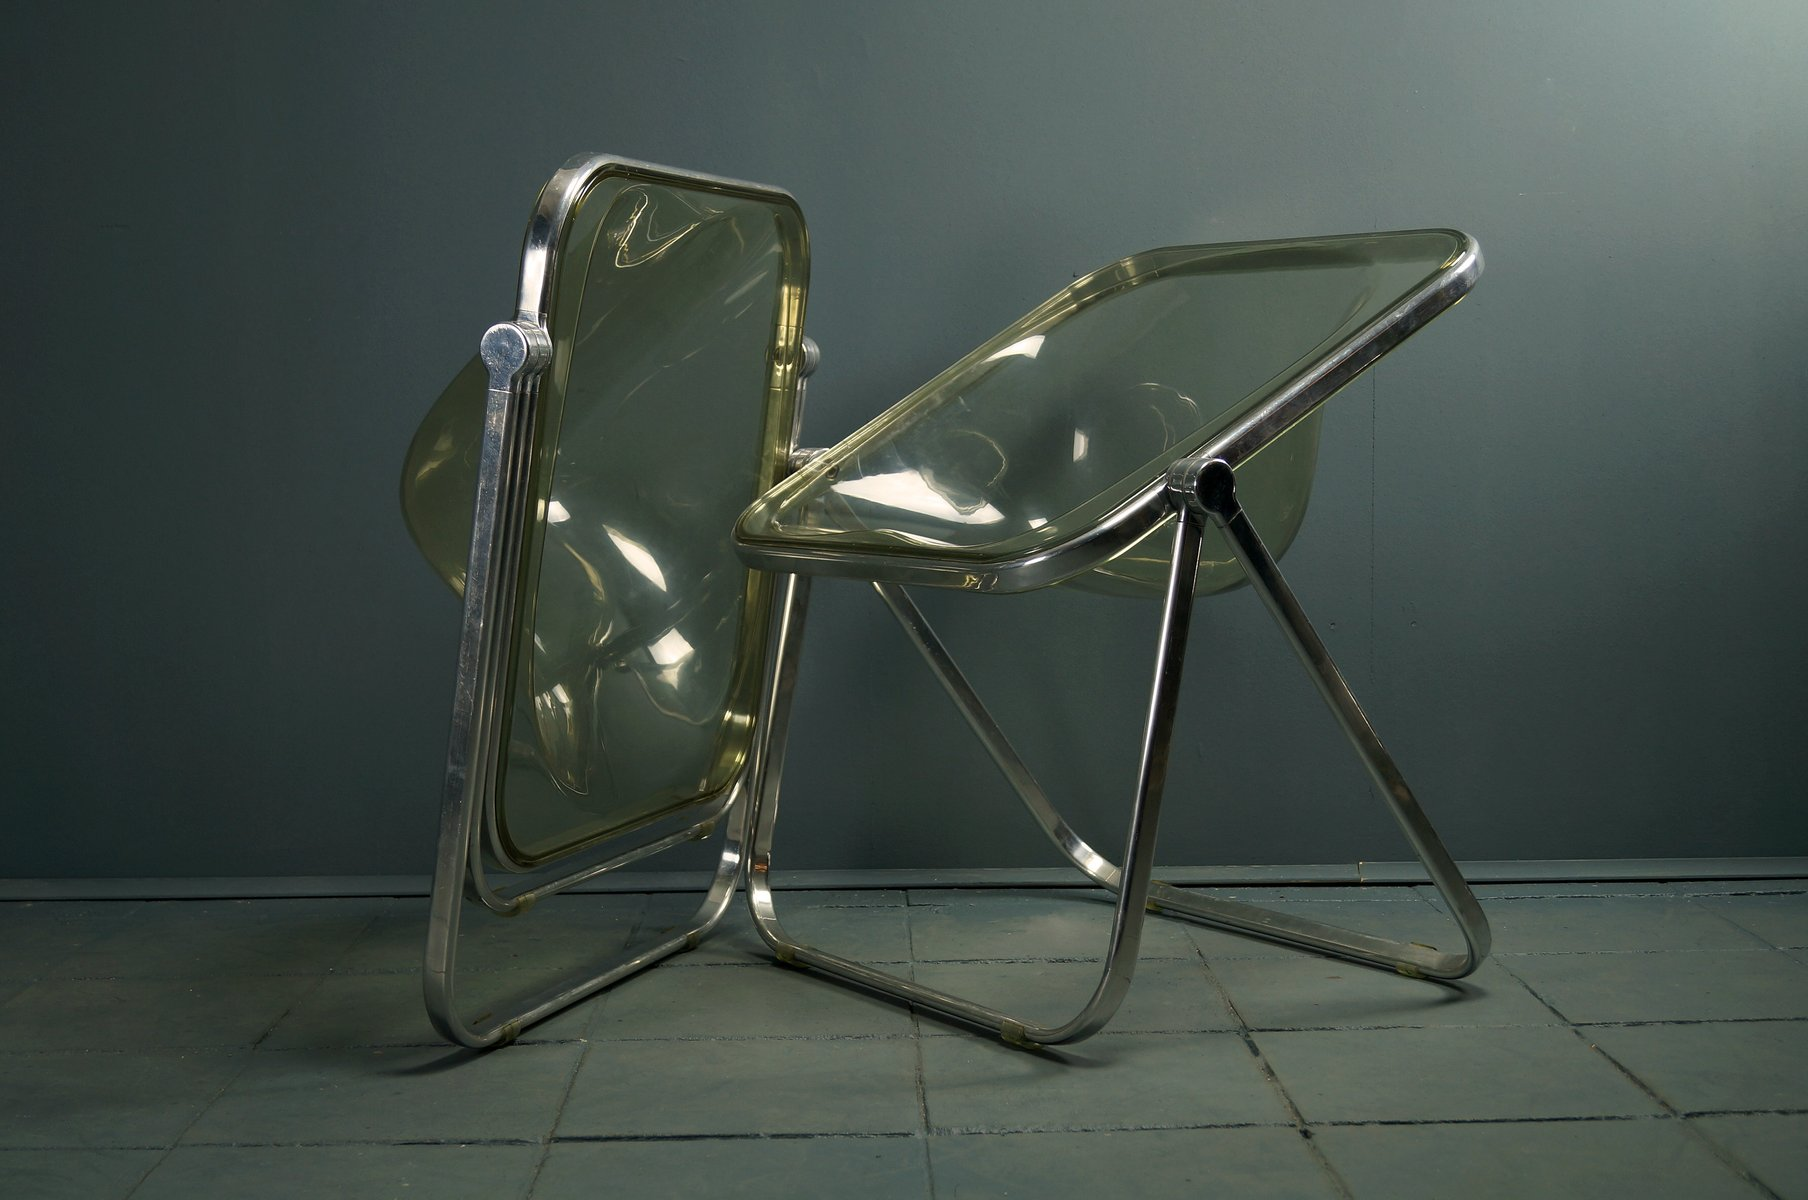 Vintage Plona Folding Chairs by Giancarlo Piretti for Castelli